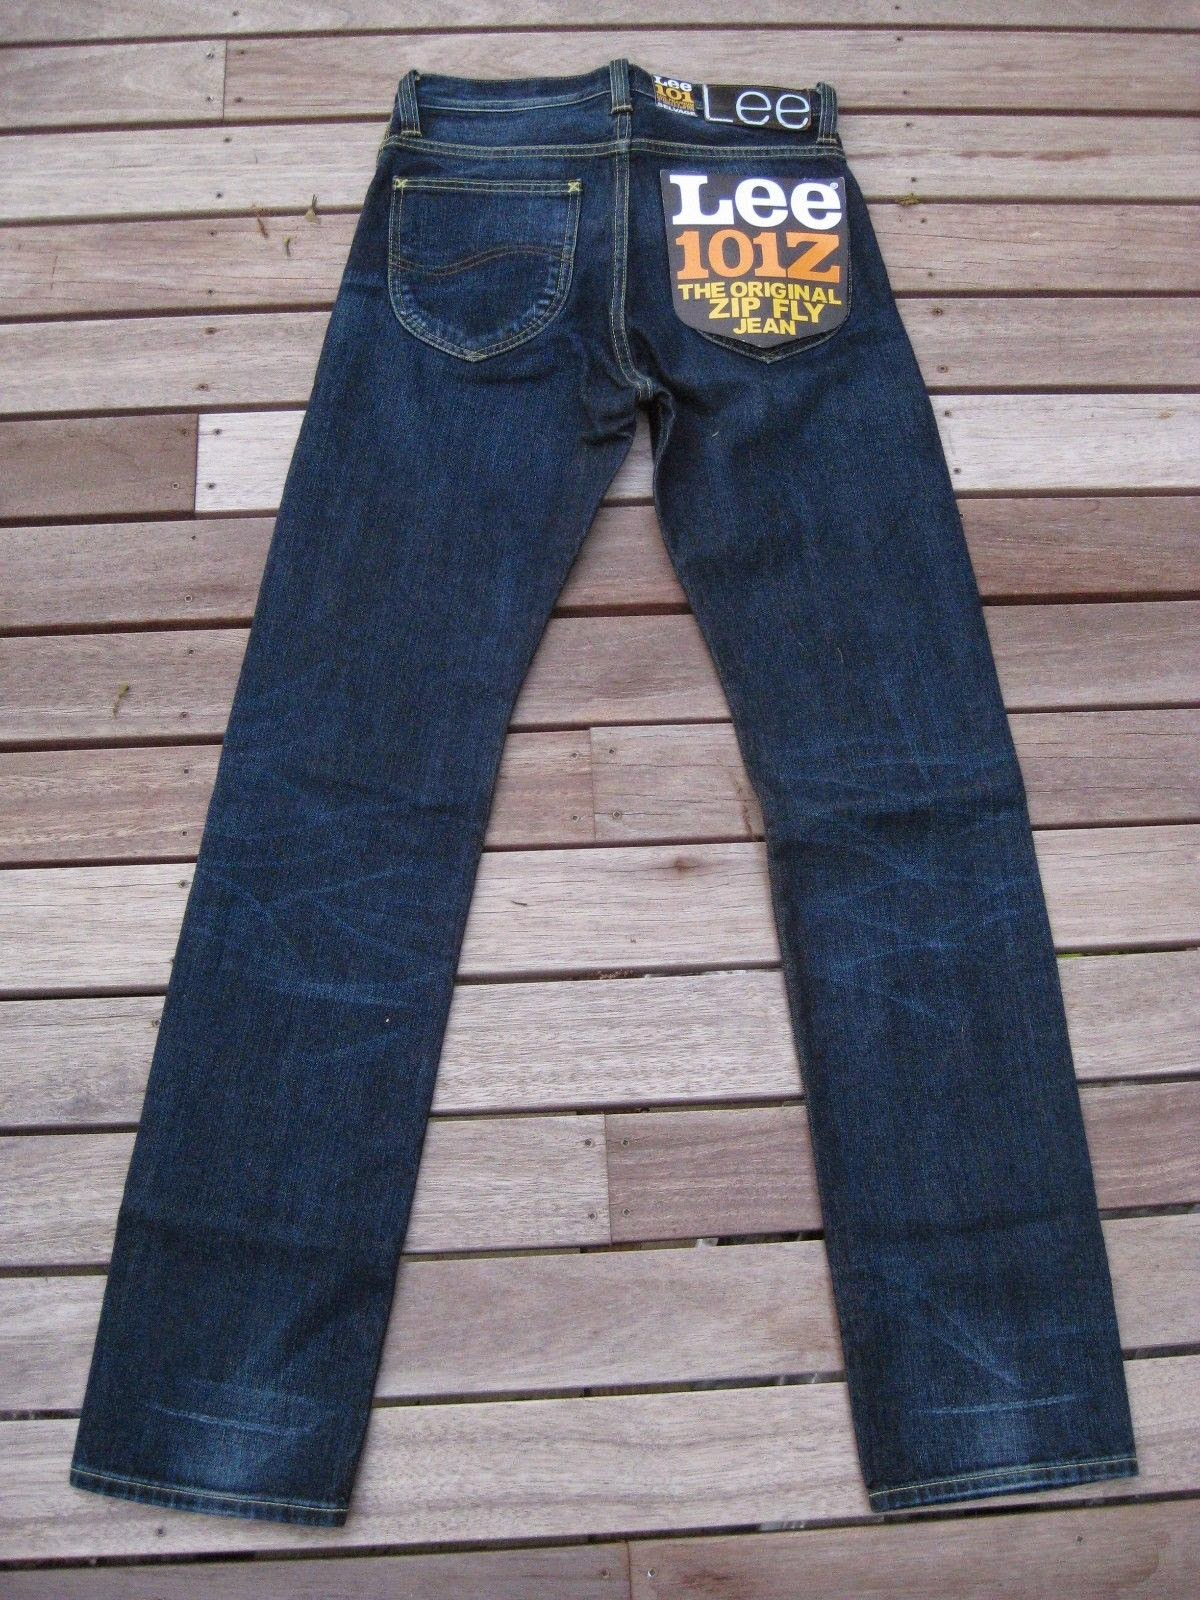 3a5371fd Up for sale are some 101Z style straight leg selvage/selvedge denim Lee  brand jeans (Style # L95049GB). The Z's stands for the zip fly that these  jeans have ...